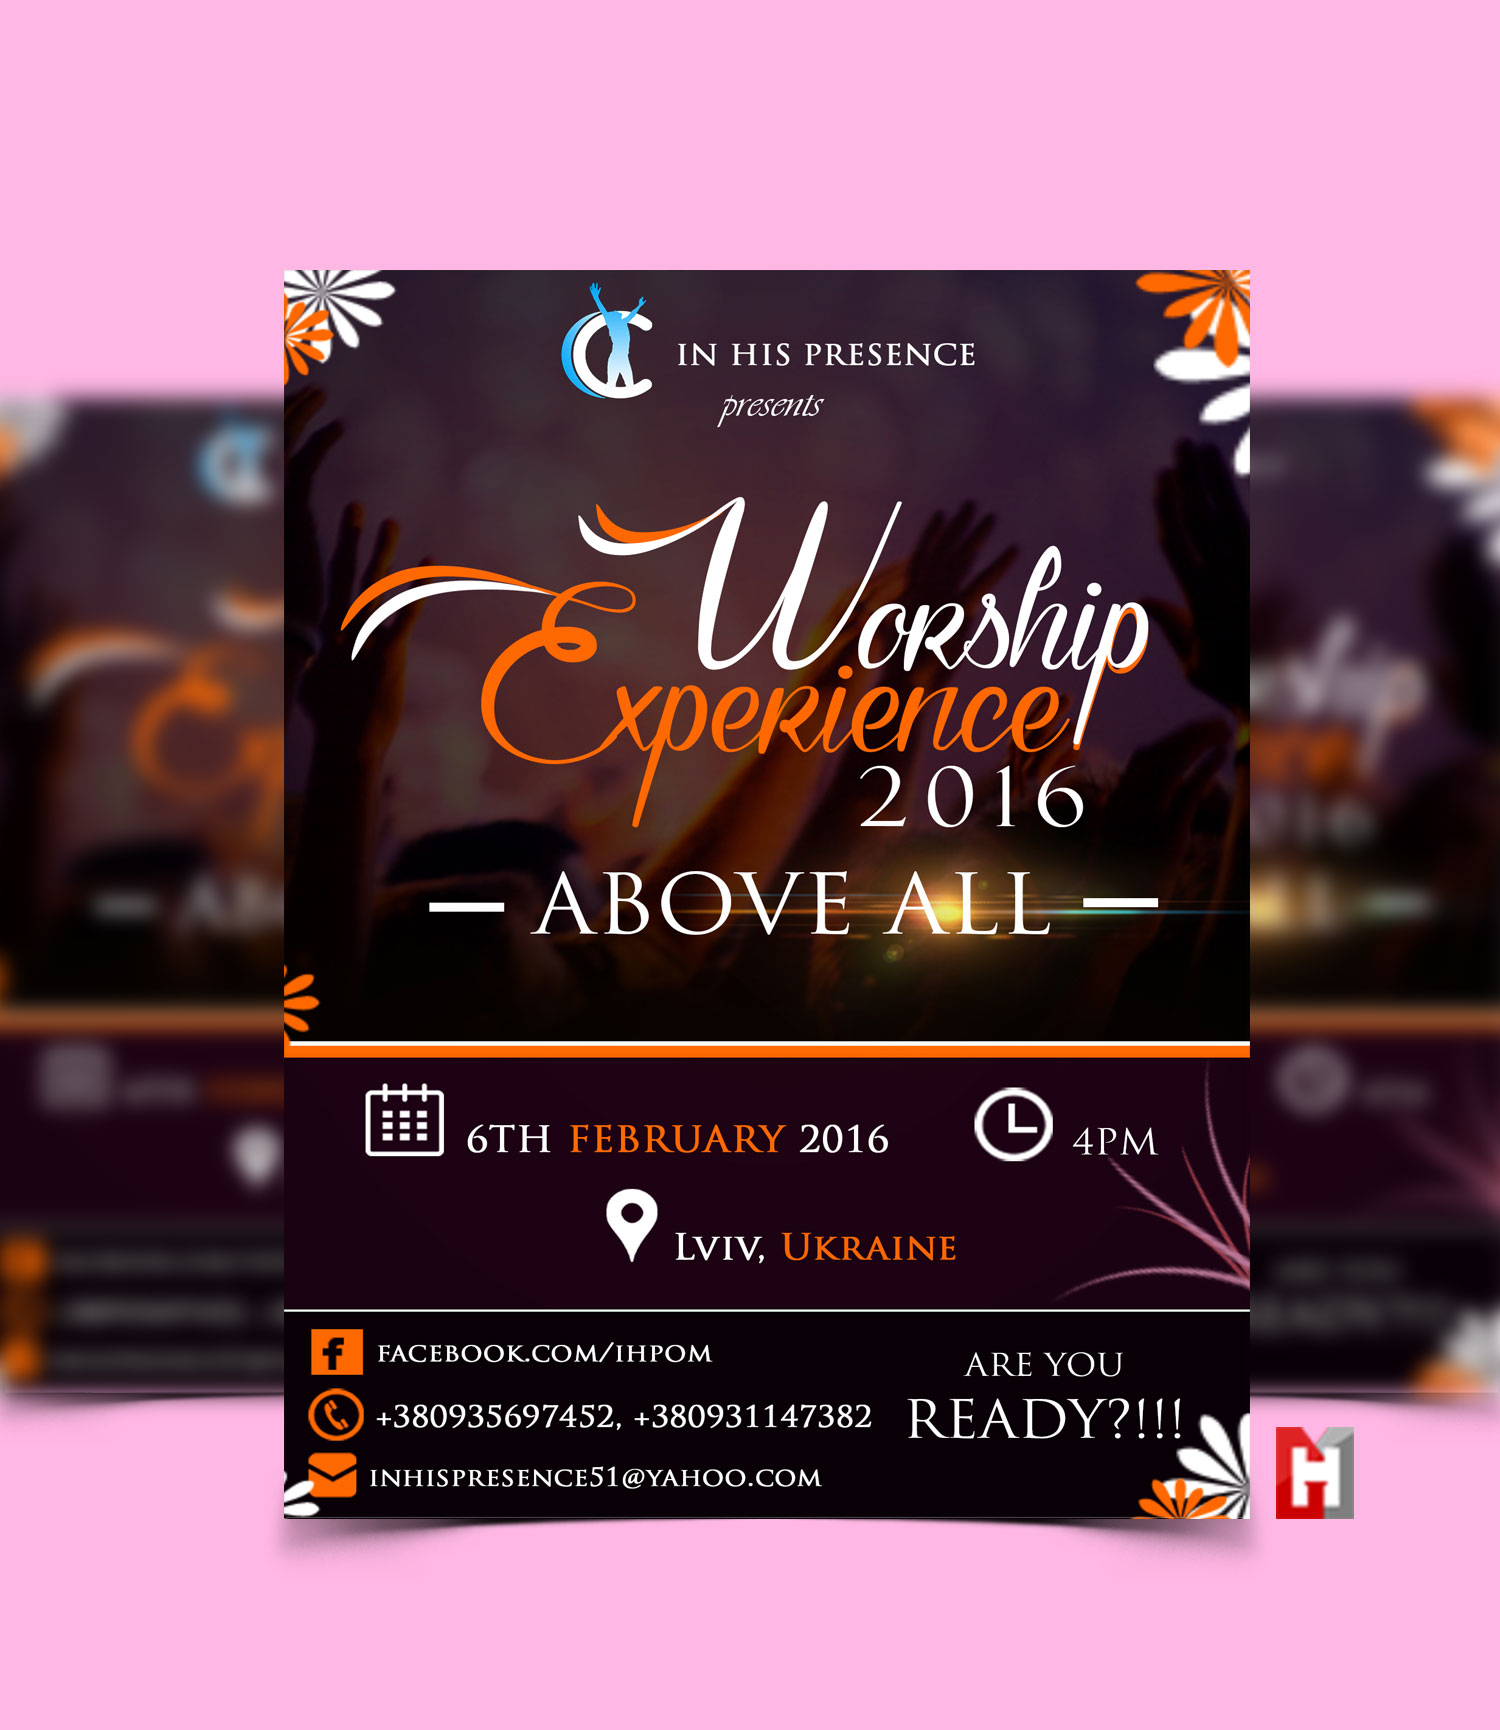 IN HIS PRESENCE – WORSHIP EXPERIENCE FLYER DESIGN